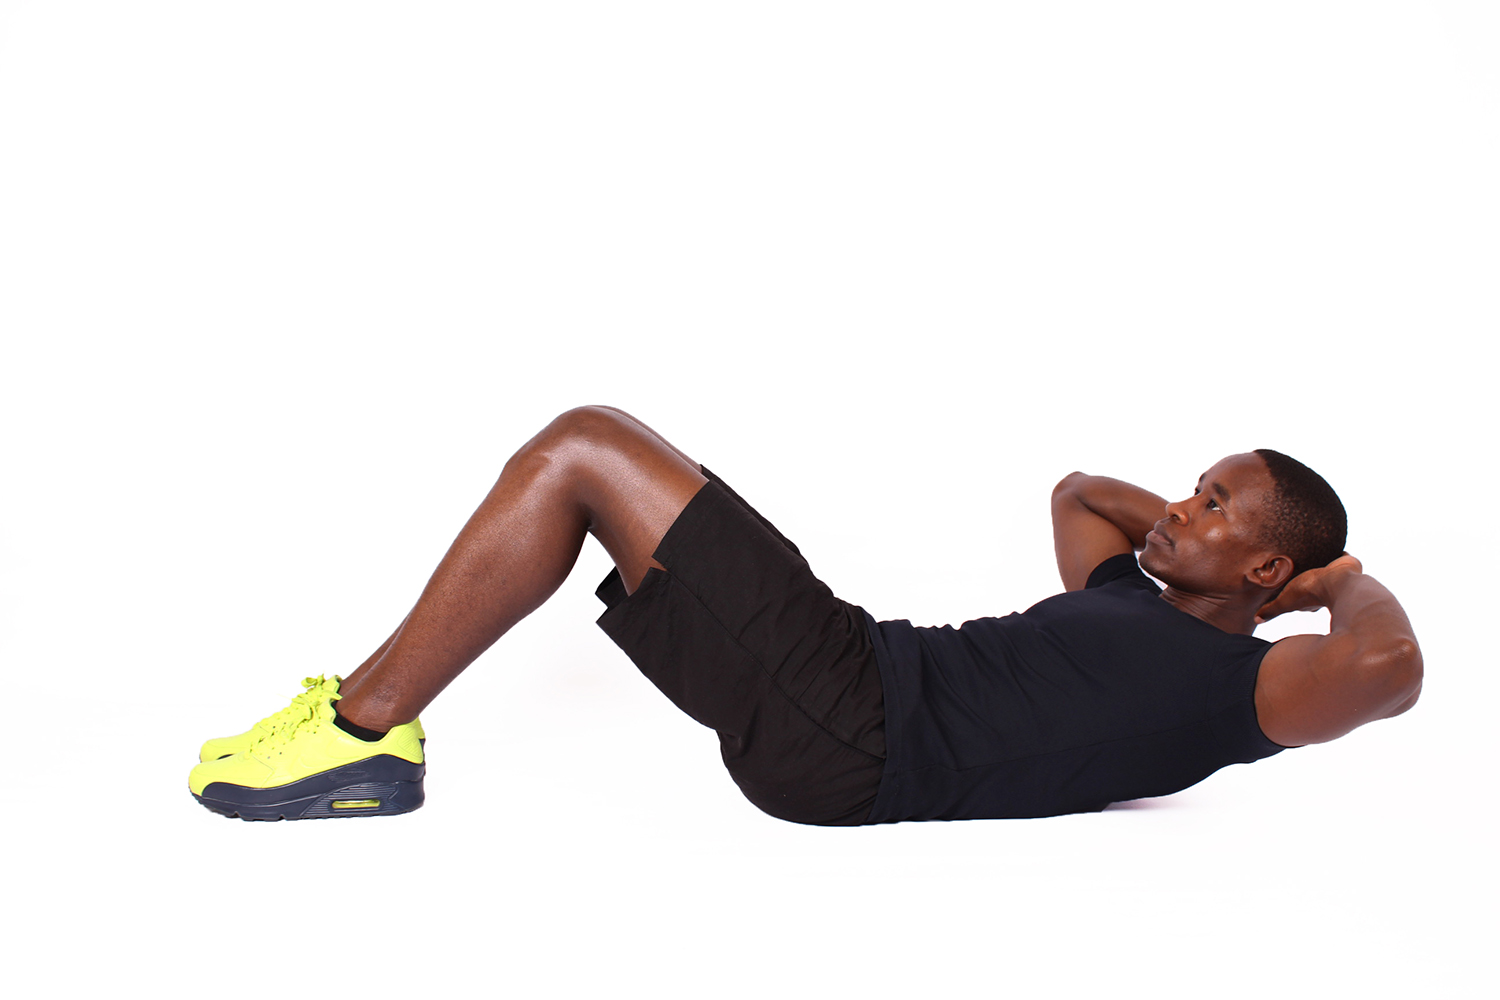 Fitness Man Doing Crunches Ab Exercise